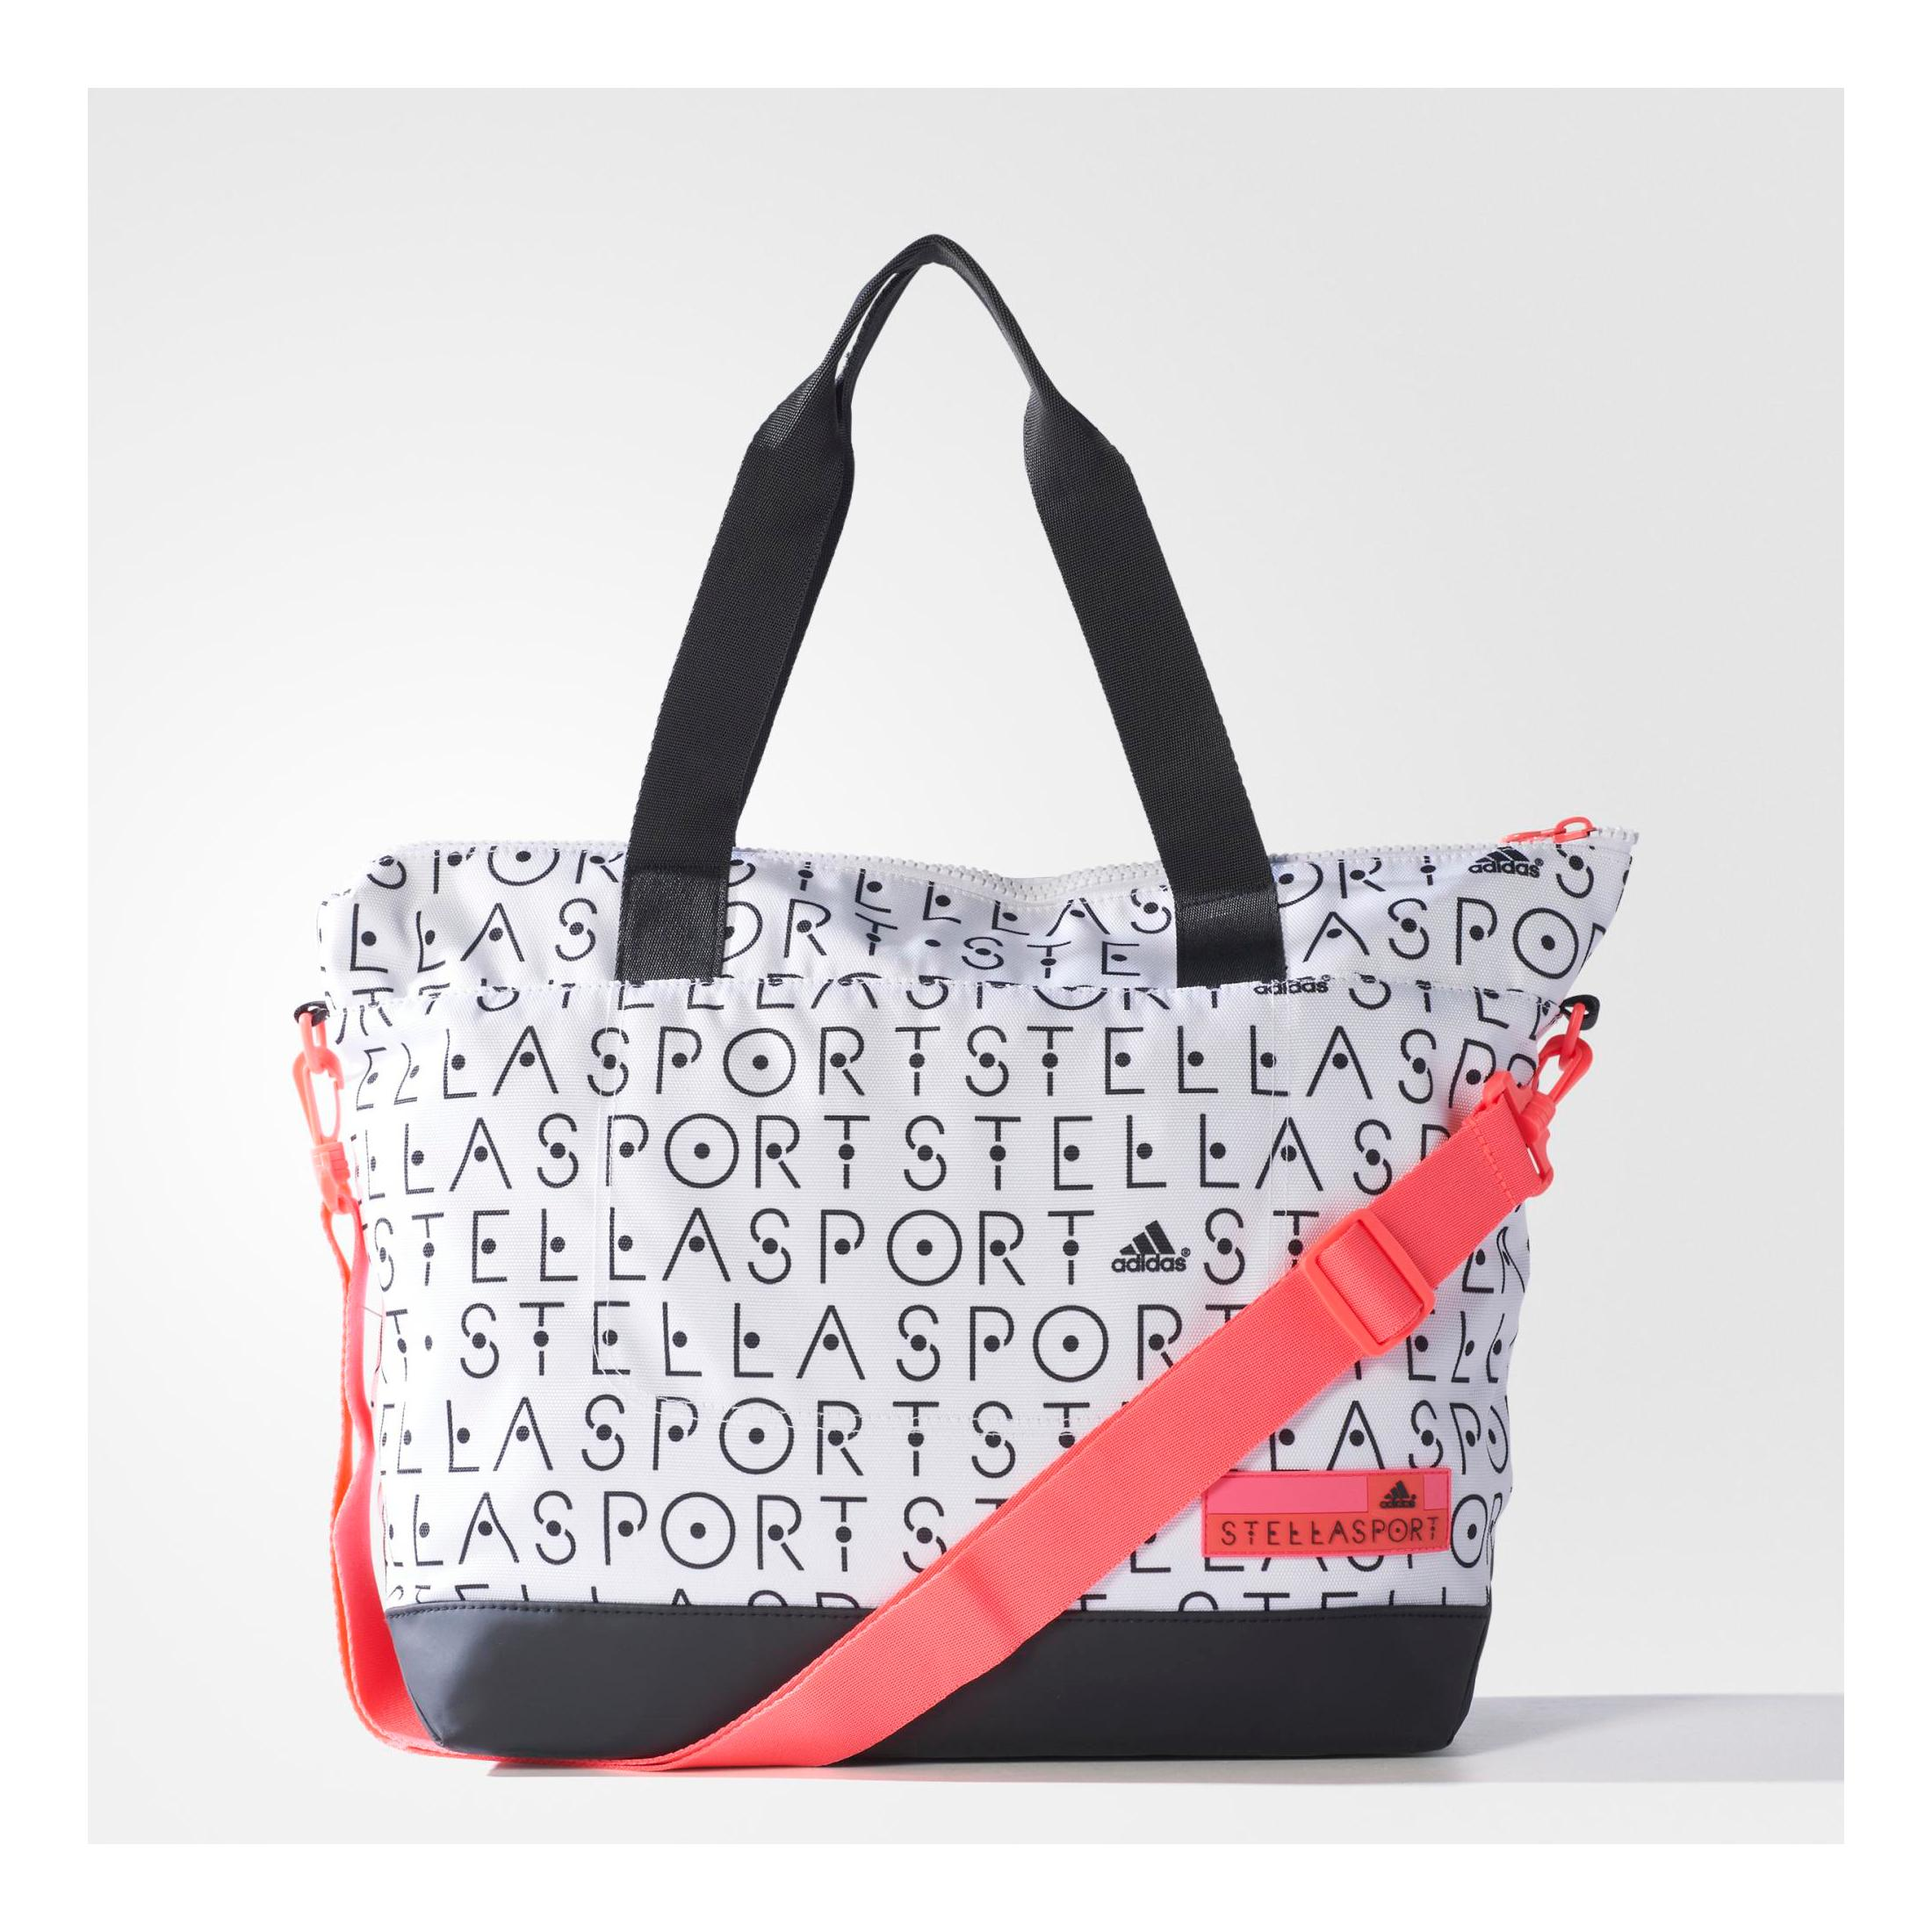 sac de sport tote bag imprim stellapsort adidas blanc et noir d s 36 00. Black Bedroom Furniture Sets. Home Design Ideas